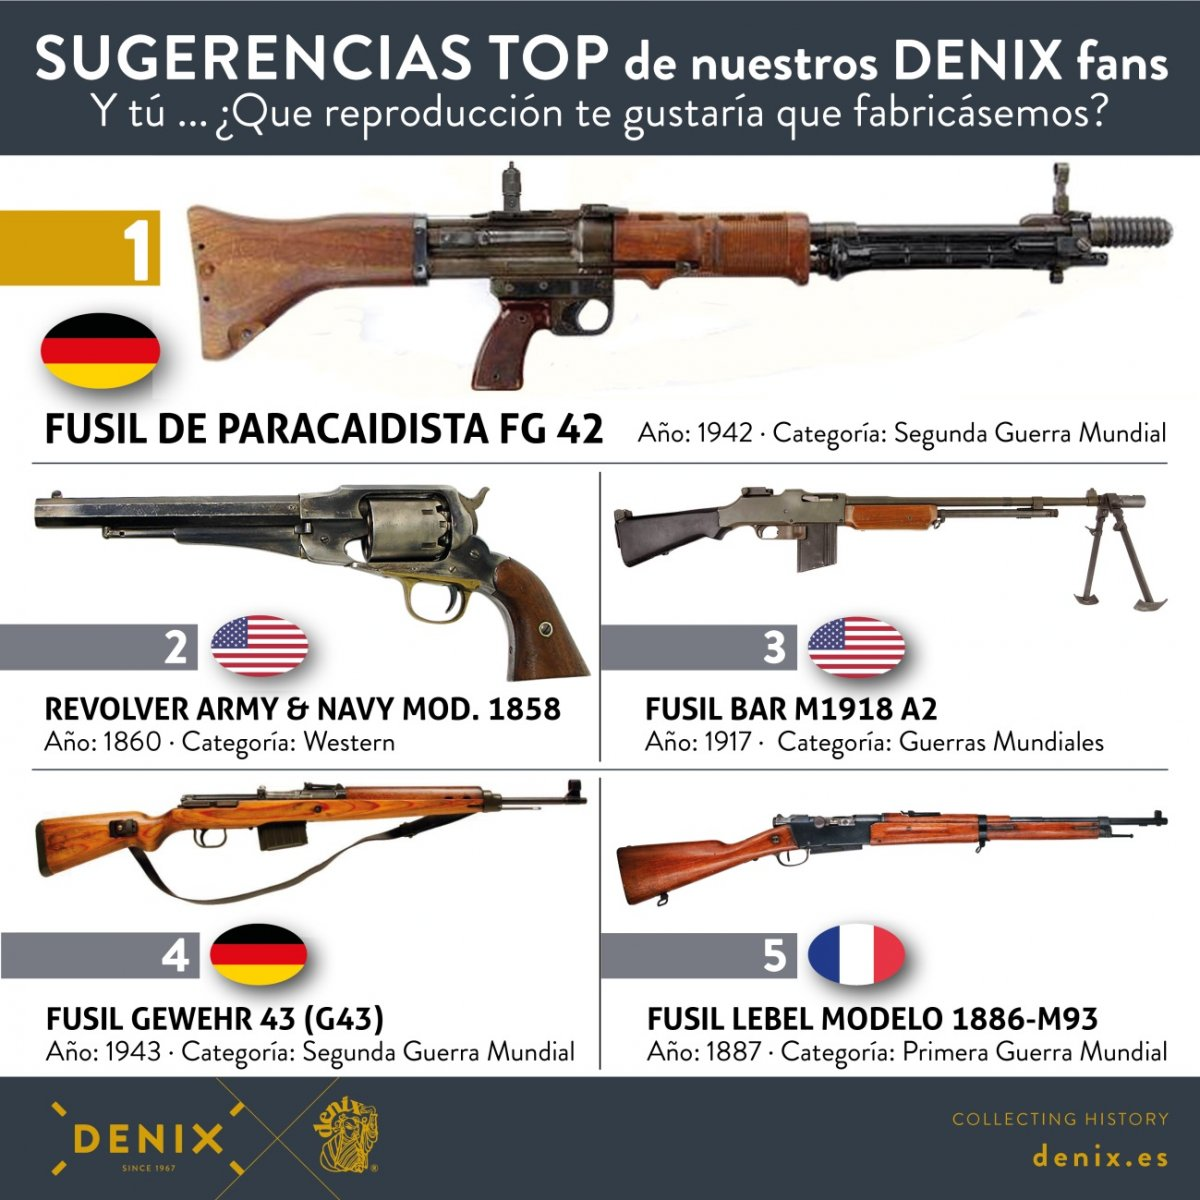 Sugerencias TOP DENIX originales